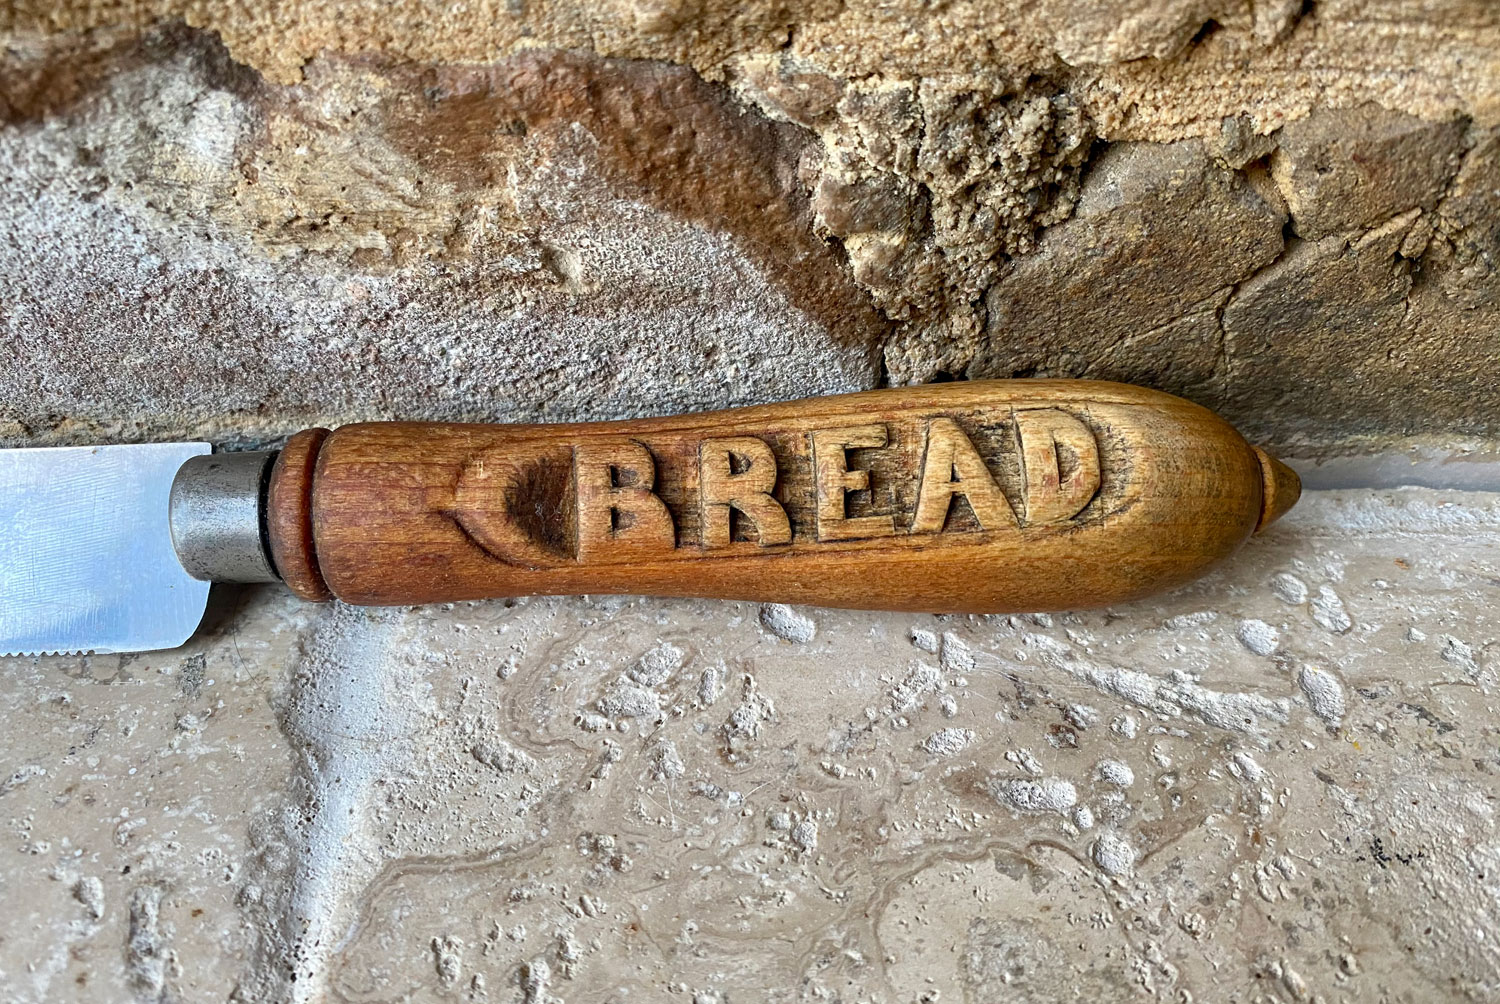 antique edwardian early 20th century carved treen wooden english bread knife stainless steel blade